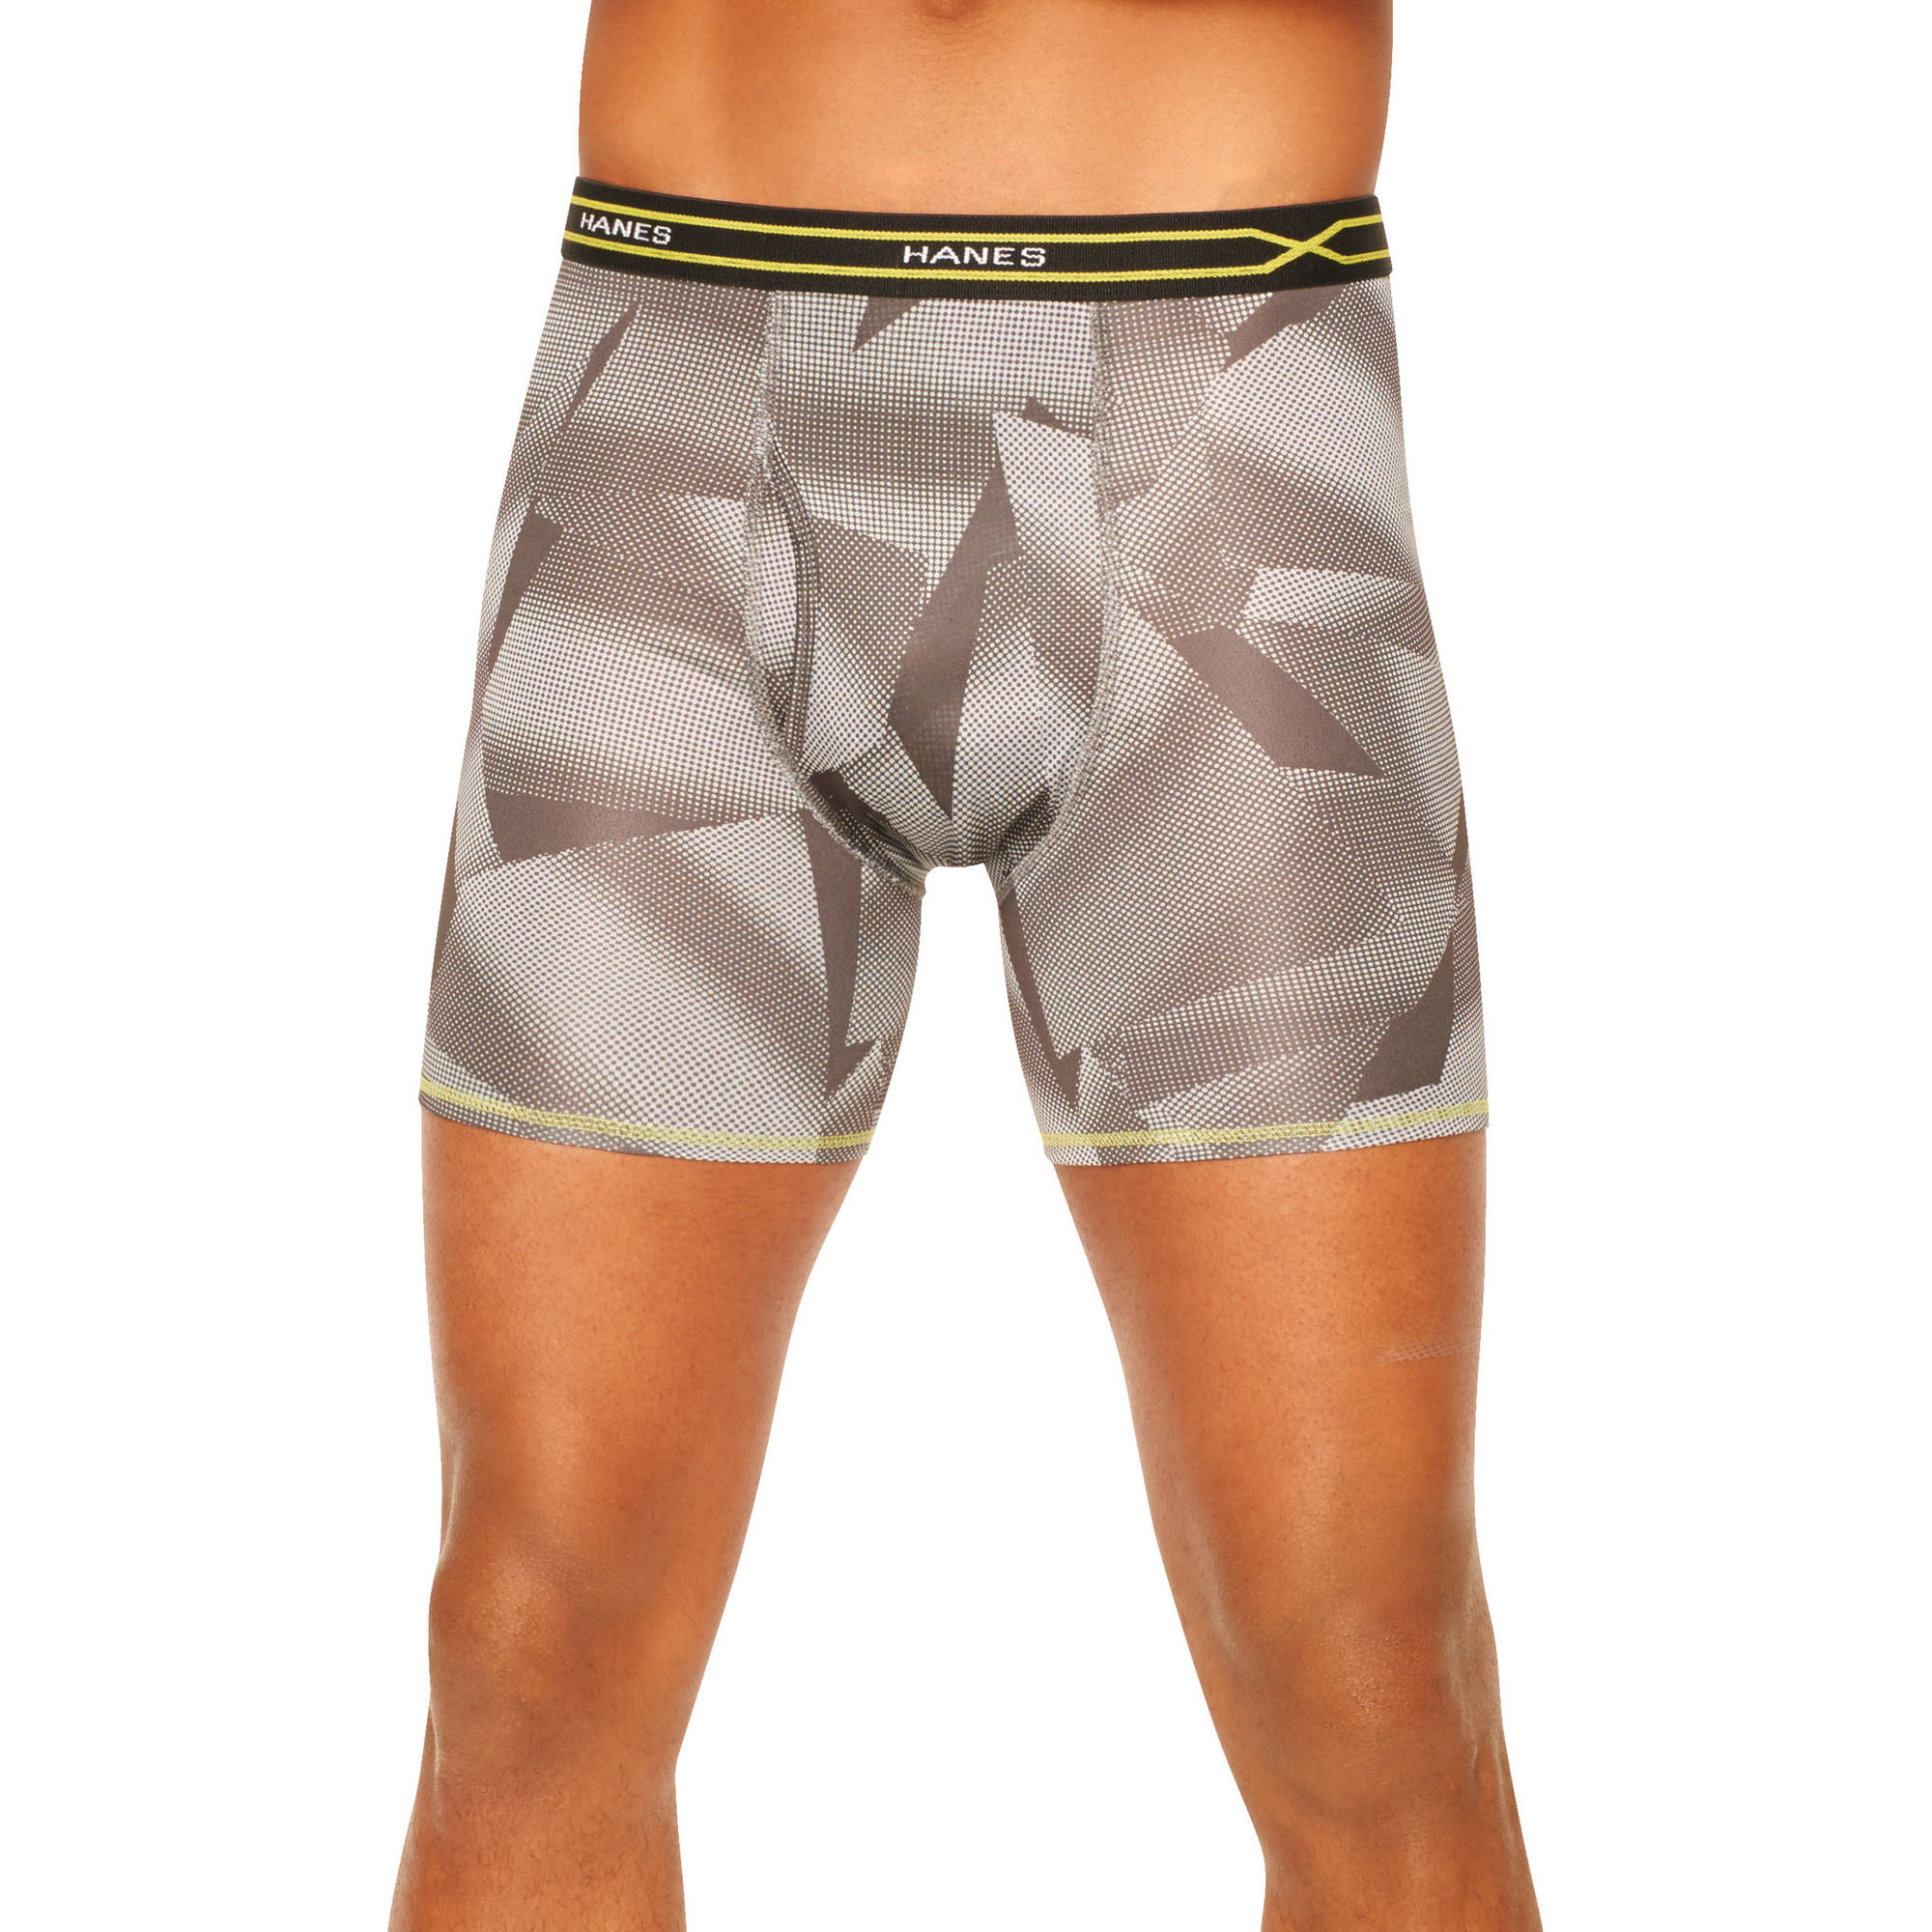 Hanes Men's X-Temp Performance Cool Boxer Brief, Colors May Vary. by Hanes Brands, Inc.